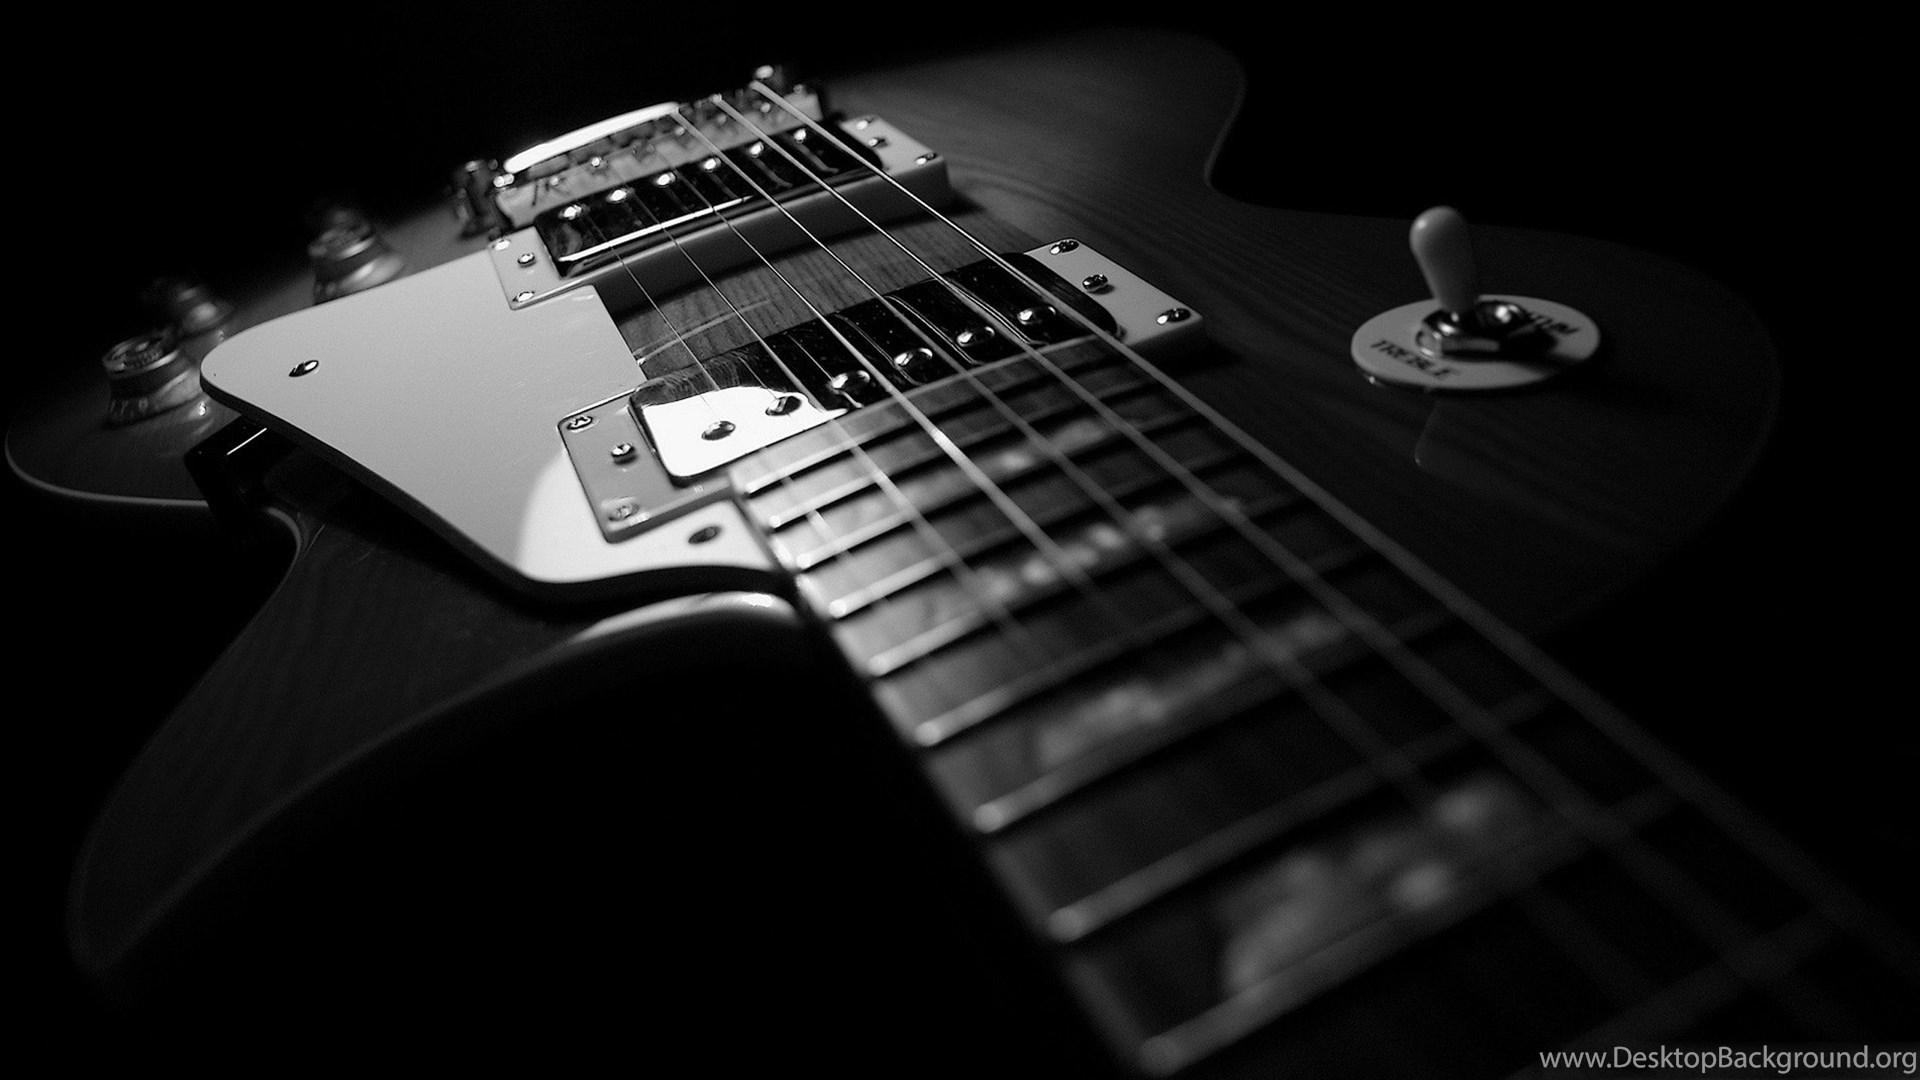 Musical Instruments Hd Wallpapers Hd Desktop Wallpapers Desktop